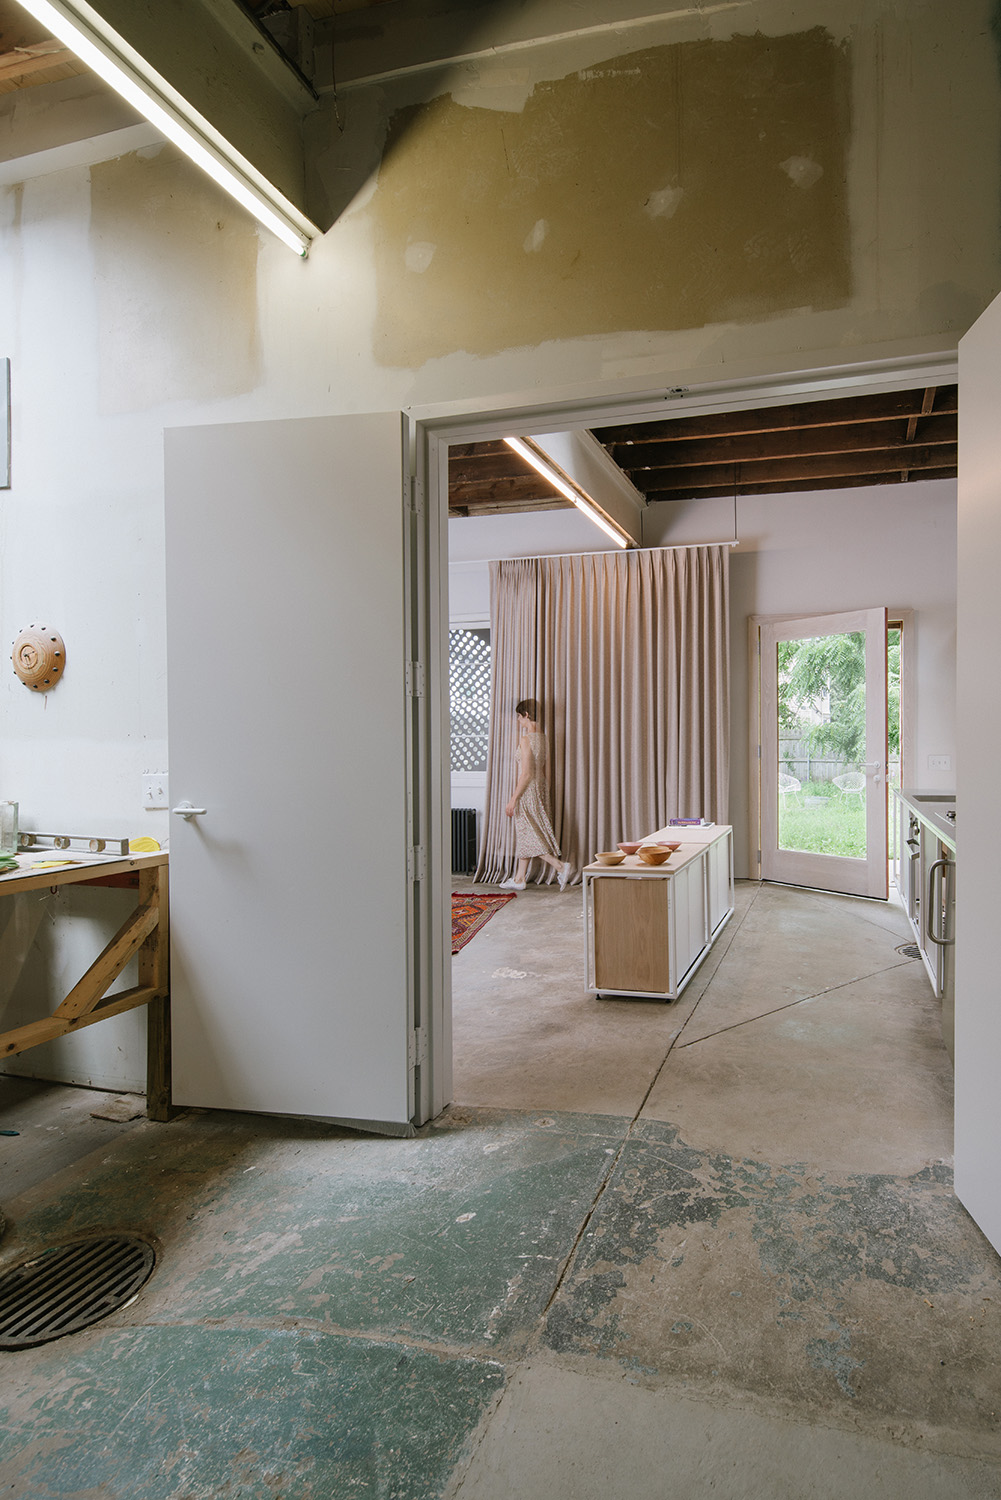 Photograph showing a view from the rough, un-climatized workshop, into the apartment space. Through-views (from the workshop, through the apartment, into the garden) are deliberate and intended to counter- Florian Holzherr